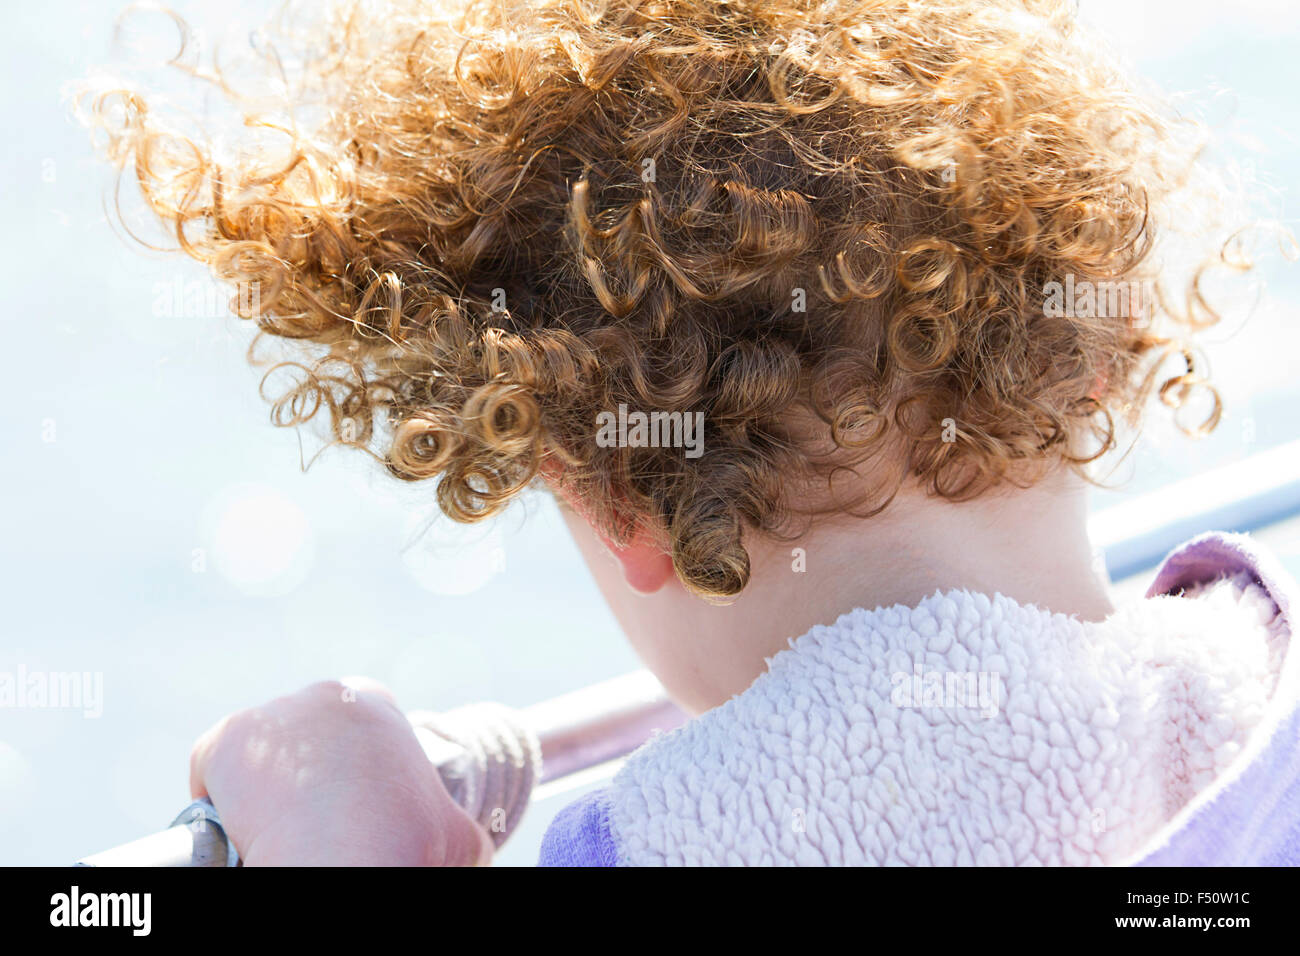 A curly haired young girl looking over a railing - Stock Image